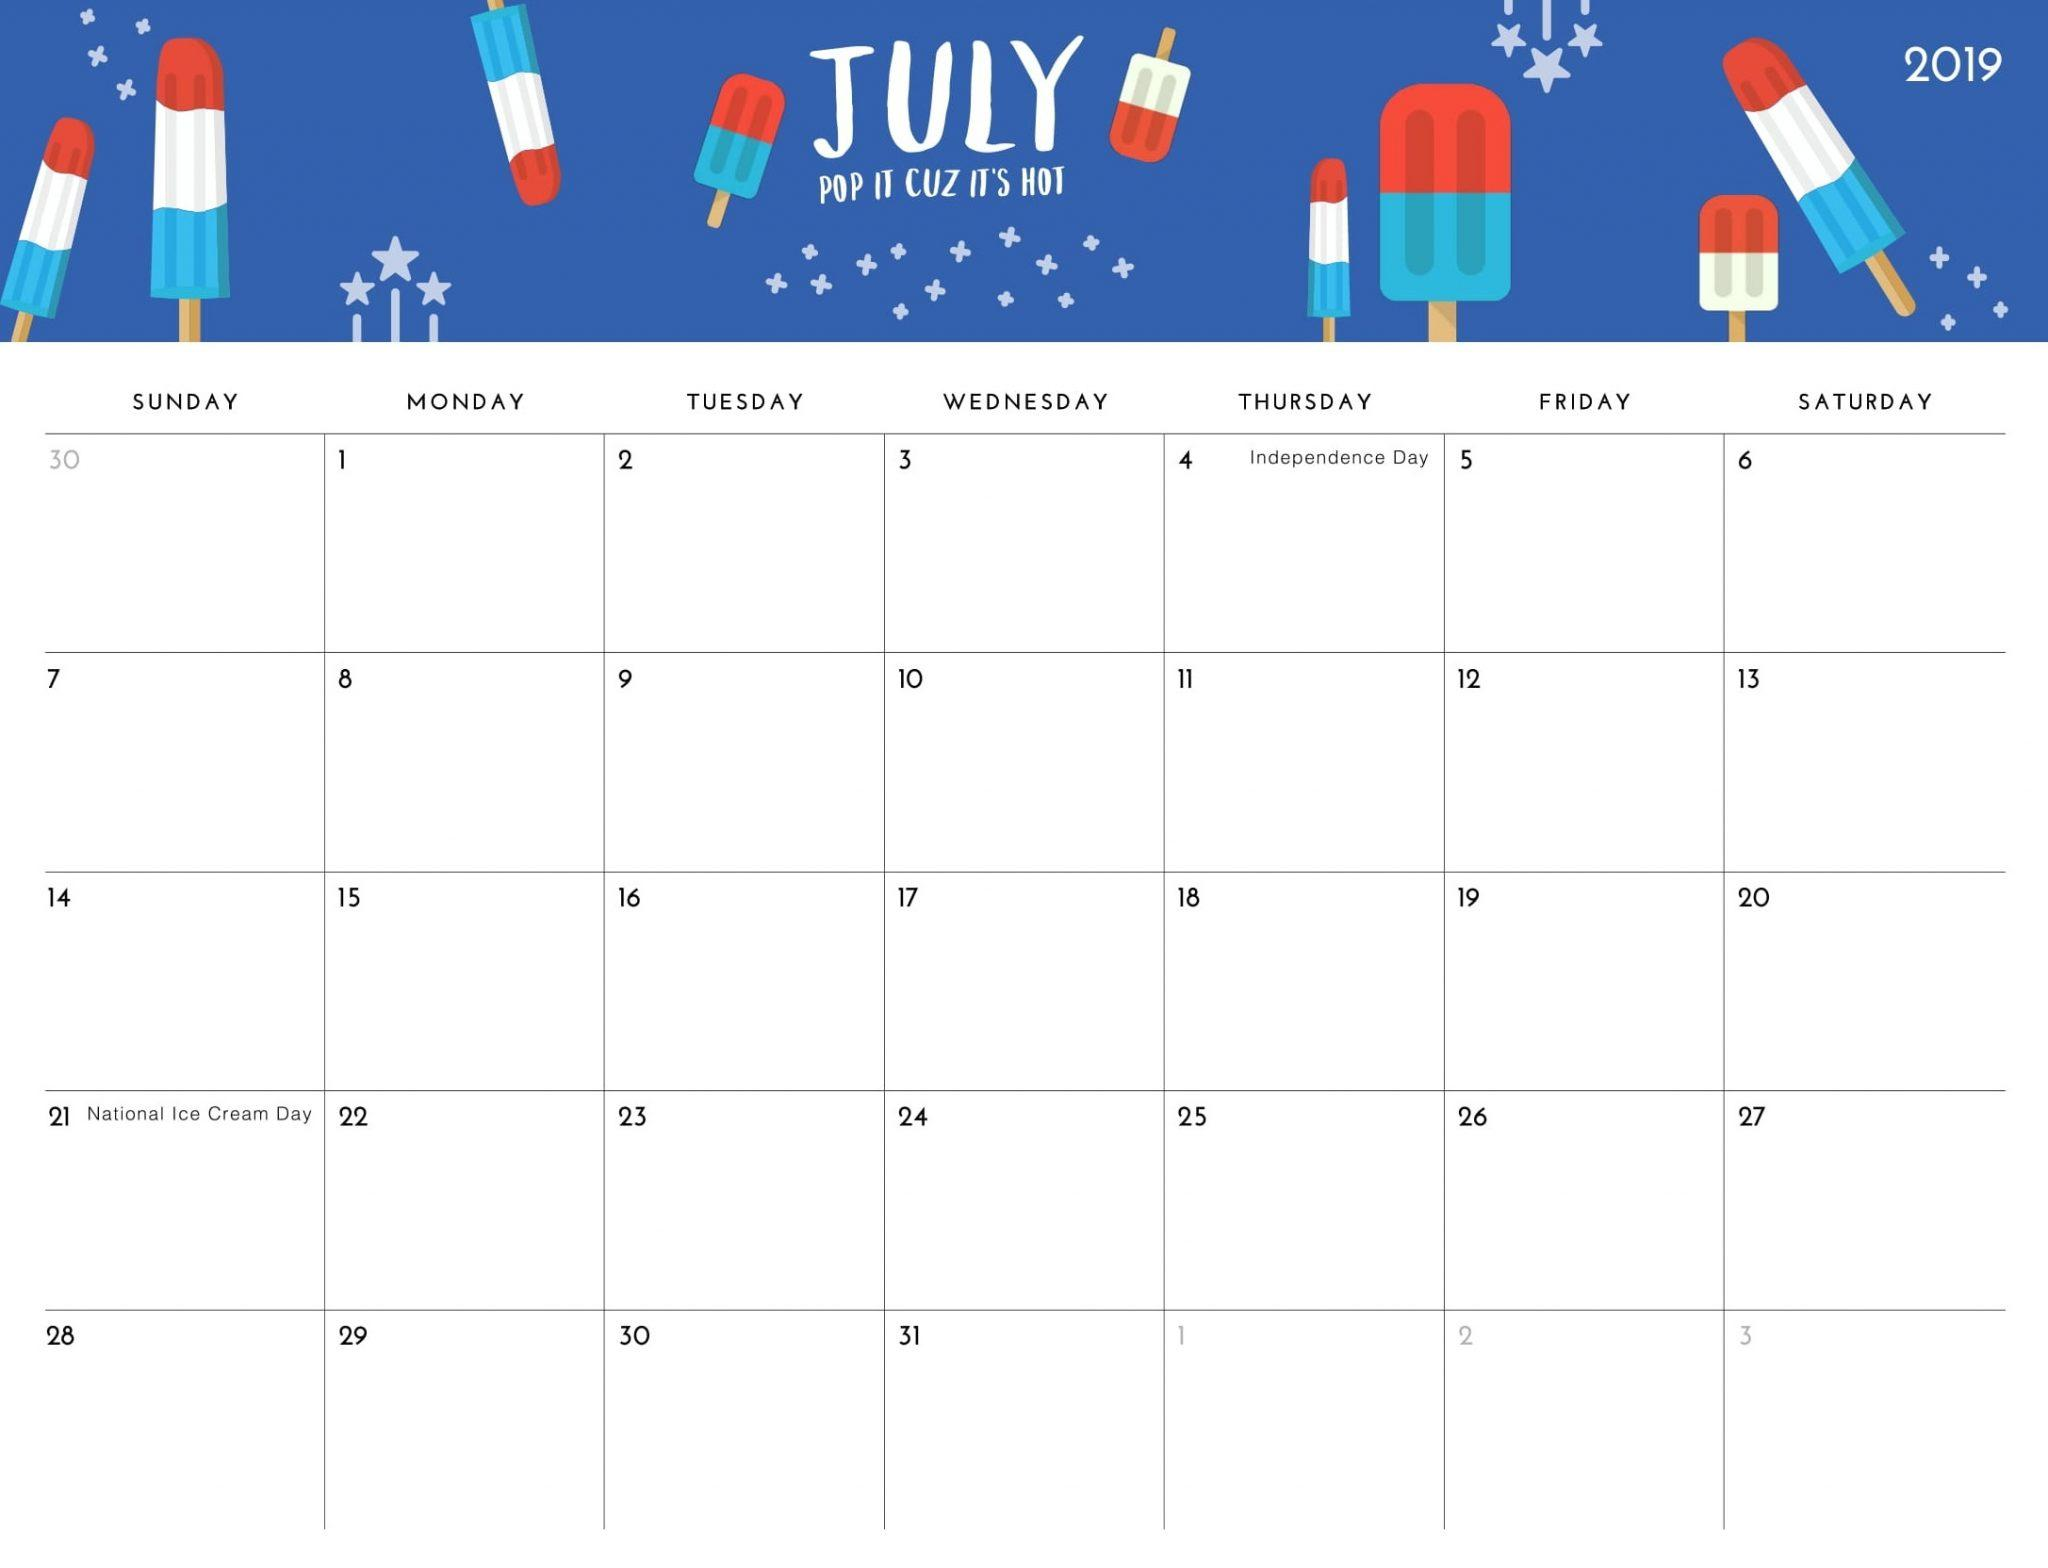 Cute July 2019 Calendar Floral Wallpapers Desk Image Free Download